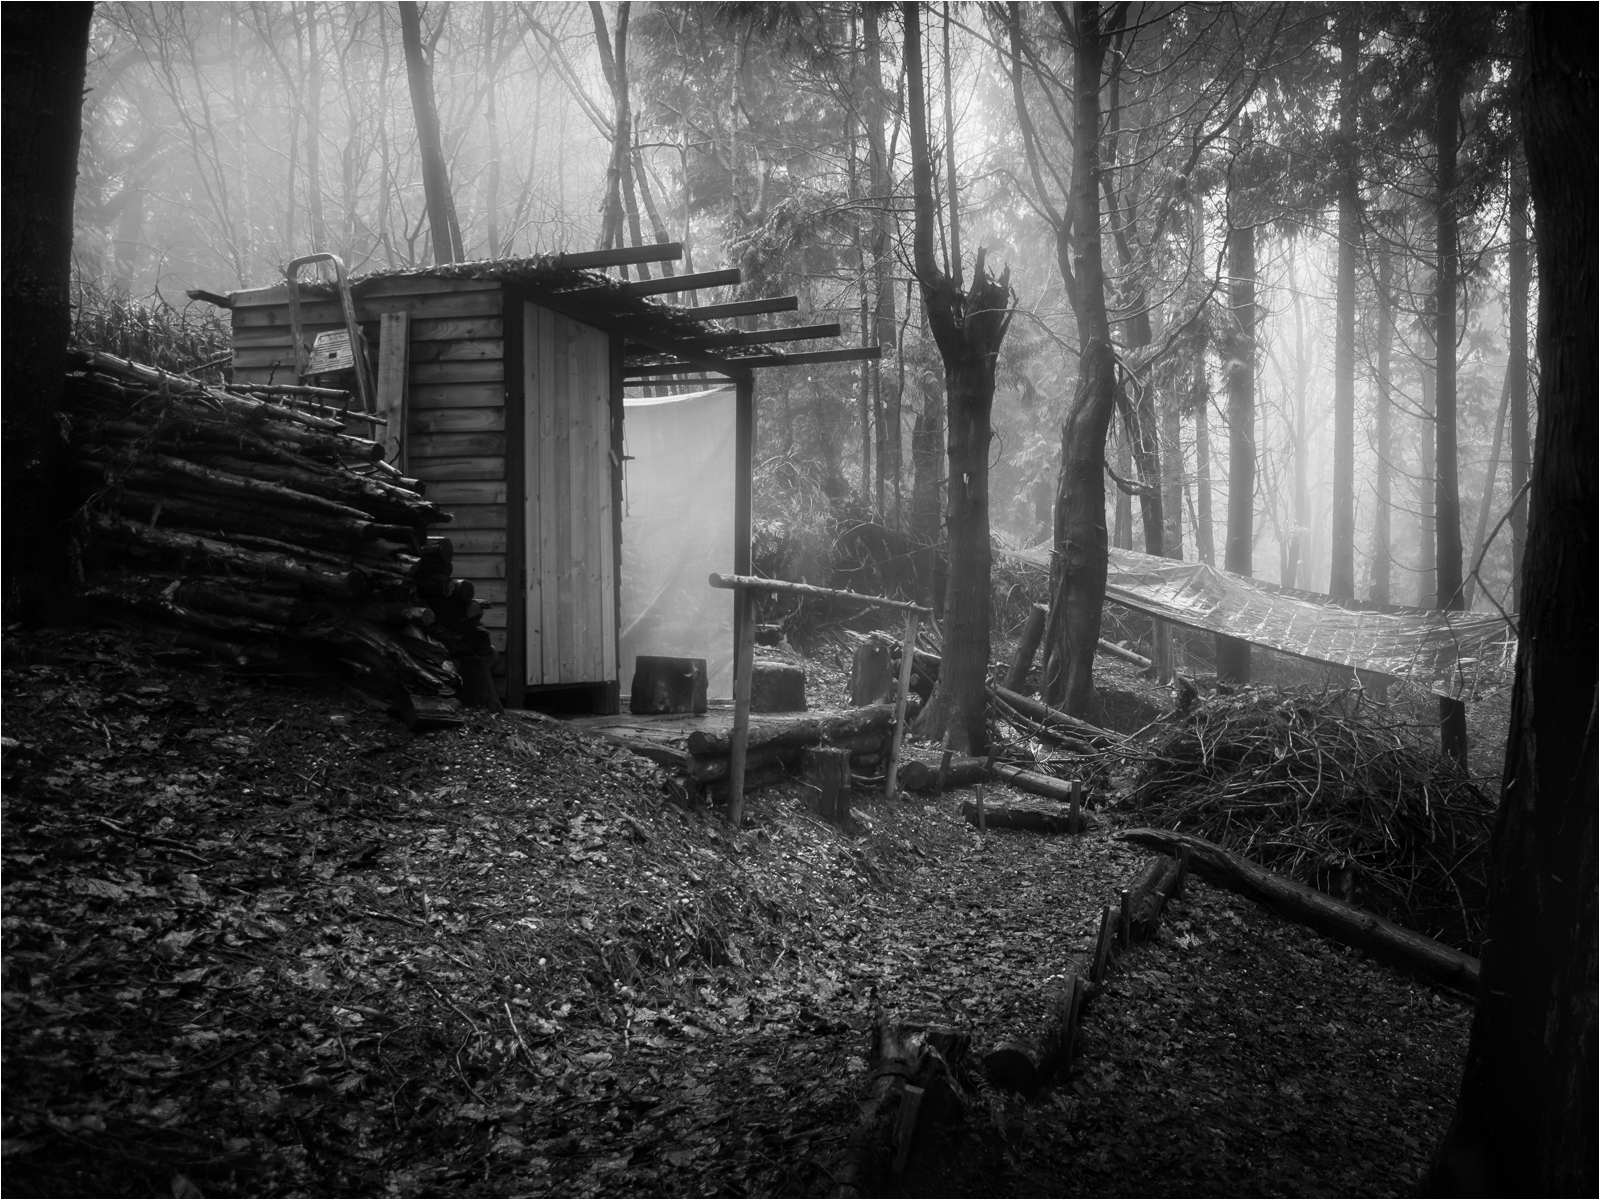 woodmans shed in the mist